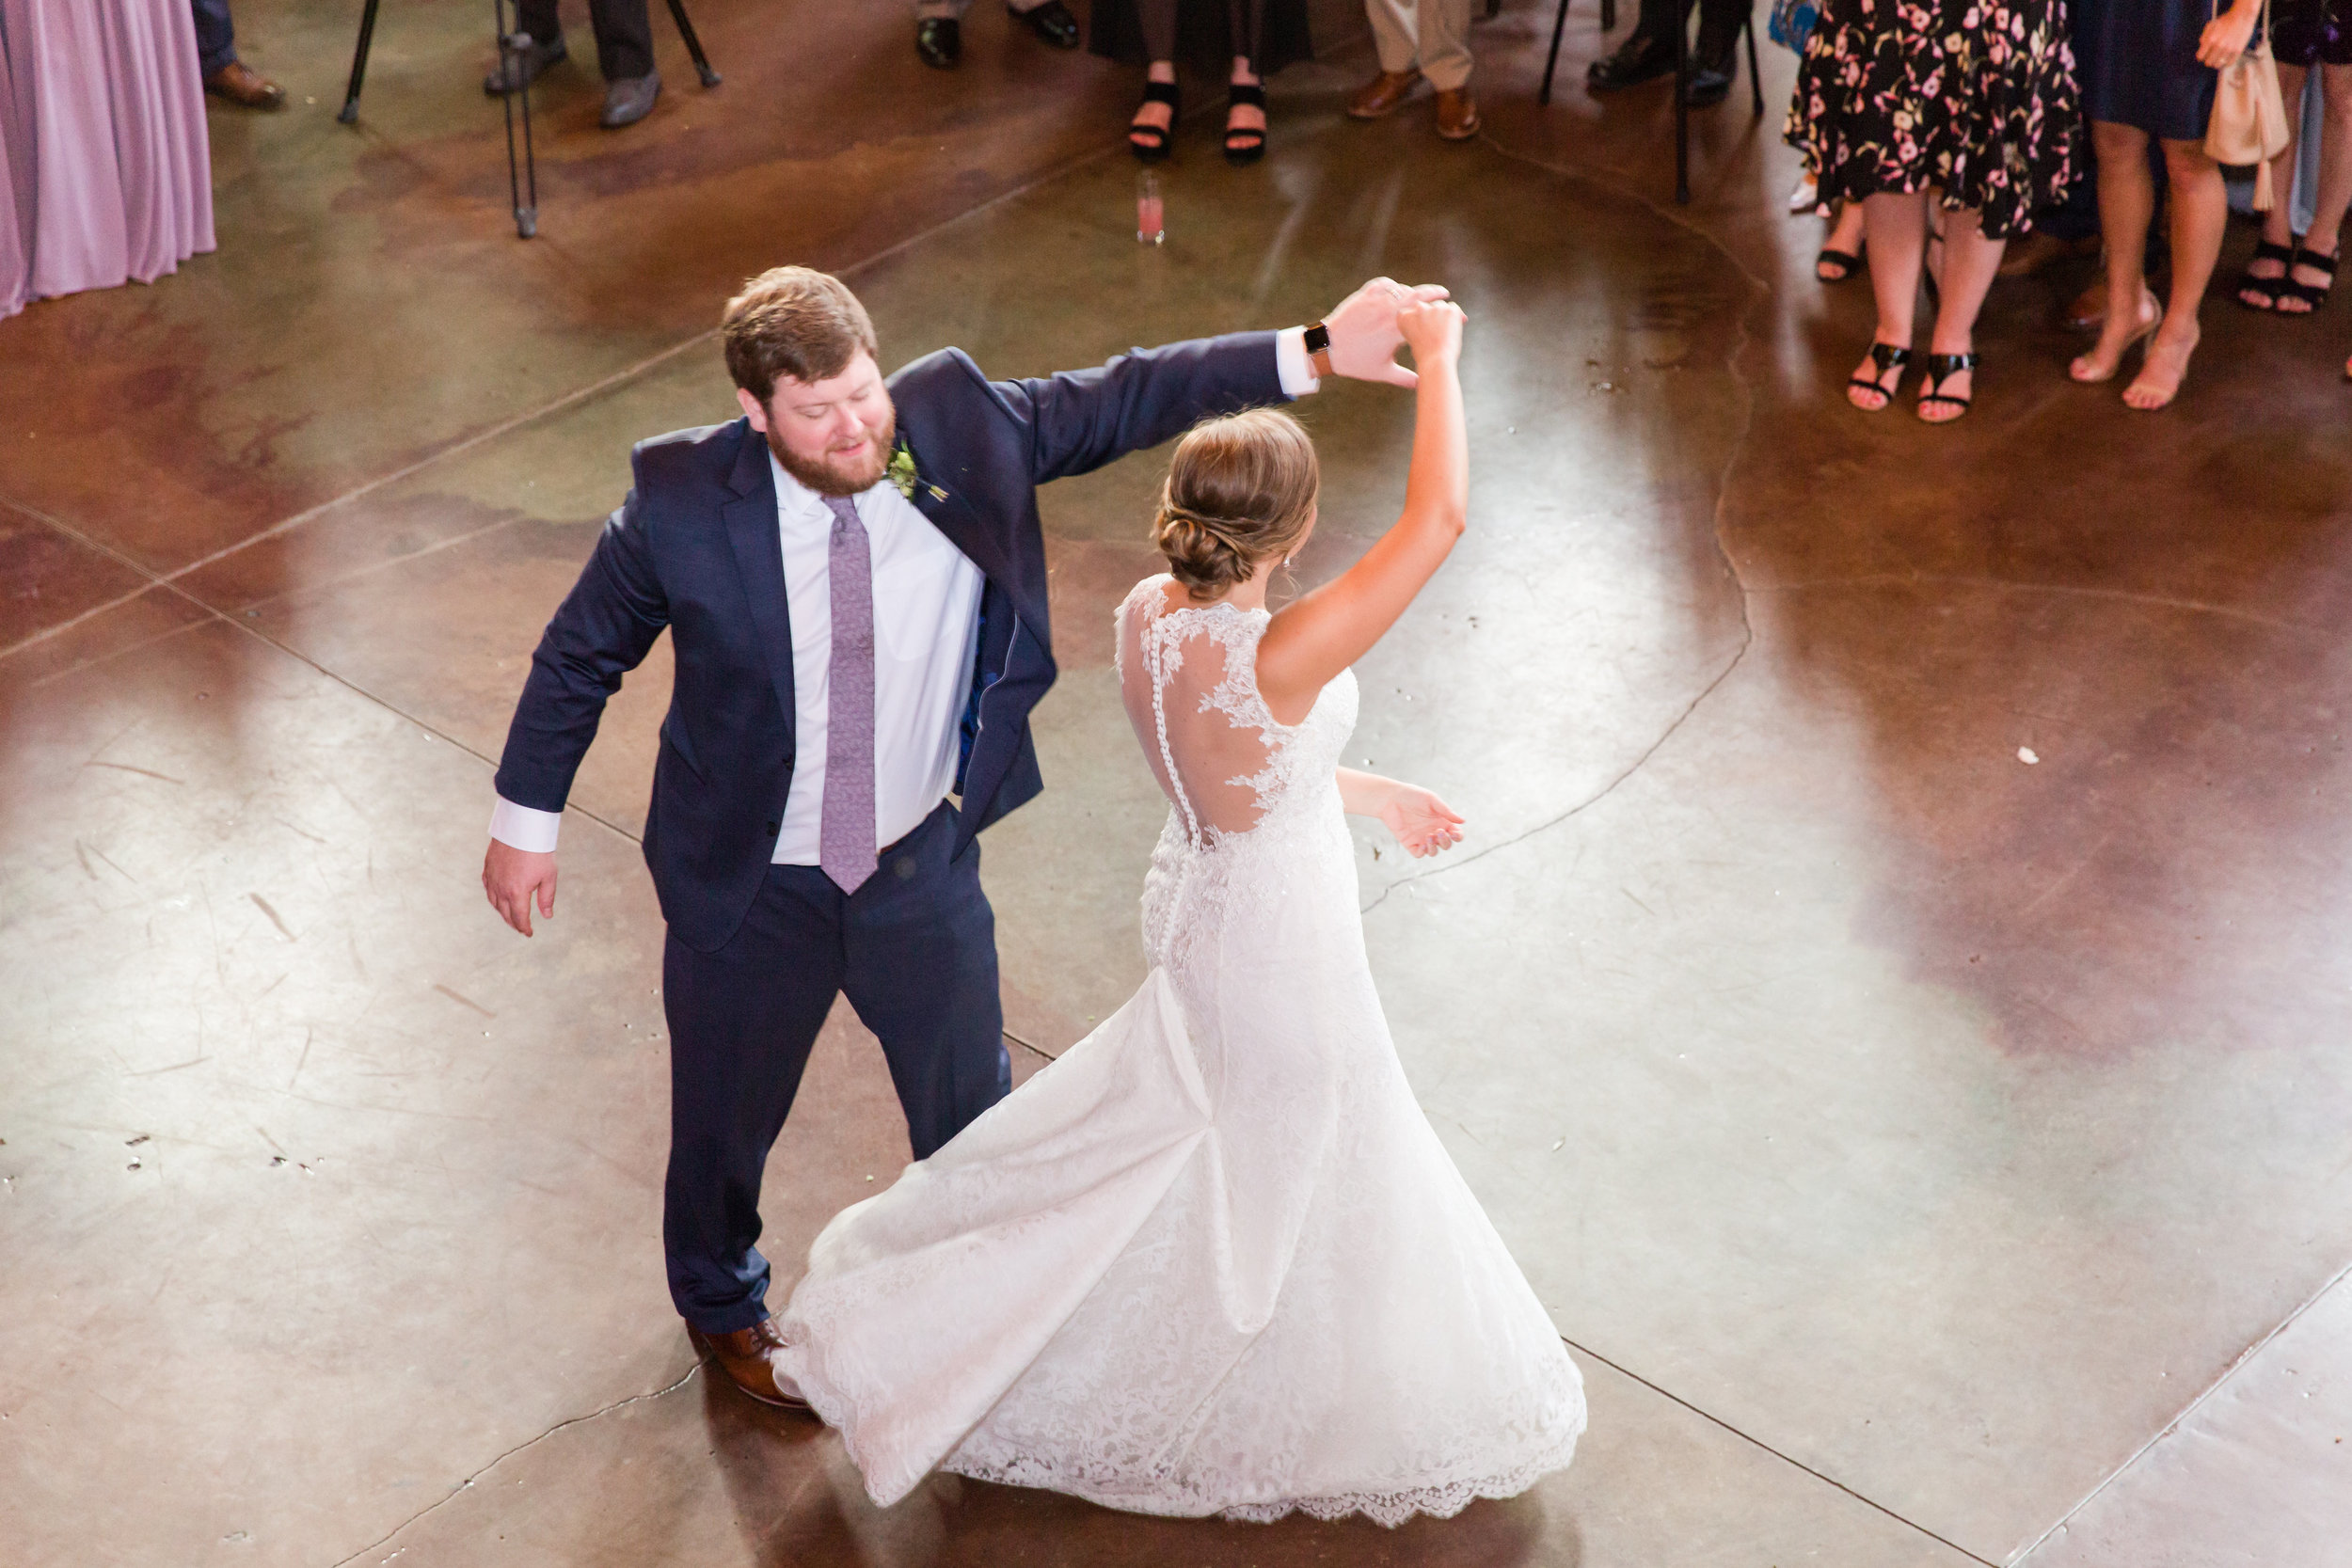 Wedding-DJ-Greenville-SC-Old Cigar-Warehouse-Megan-and-Ben105.jpg